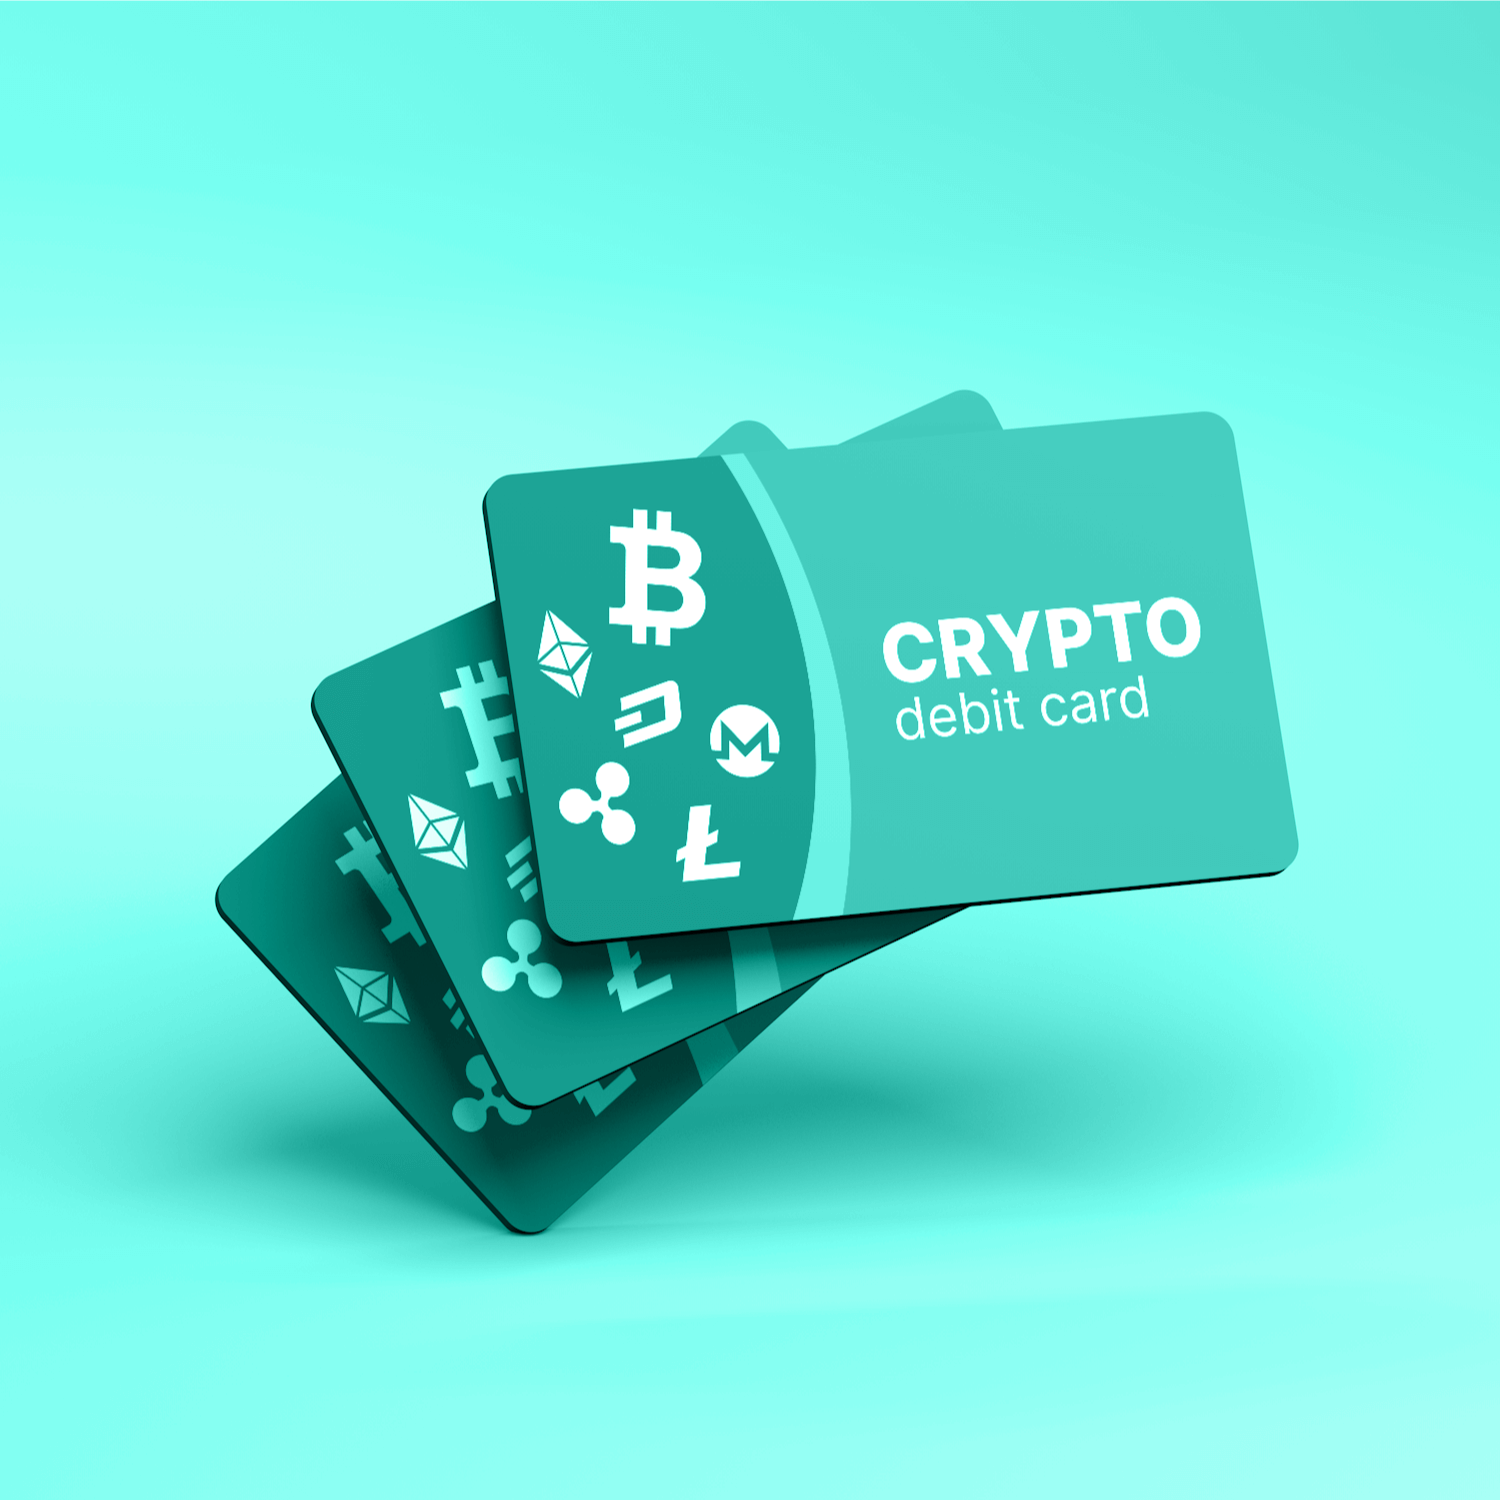 What Are Crypto Debit Cards?